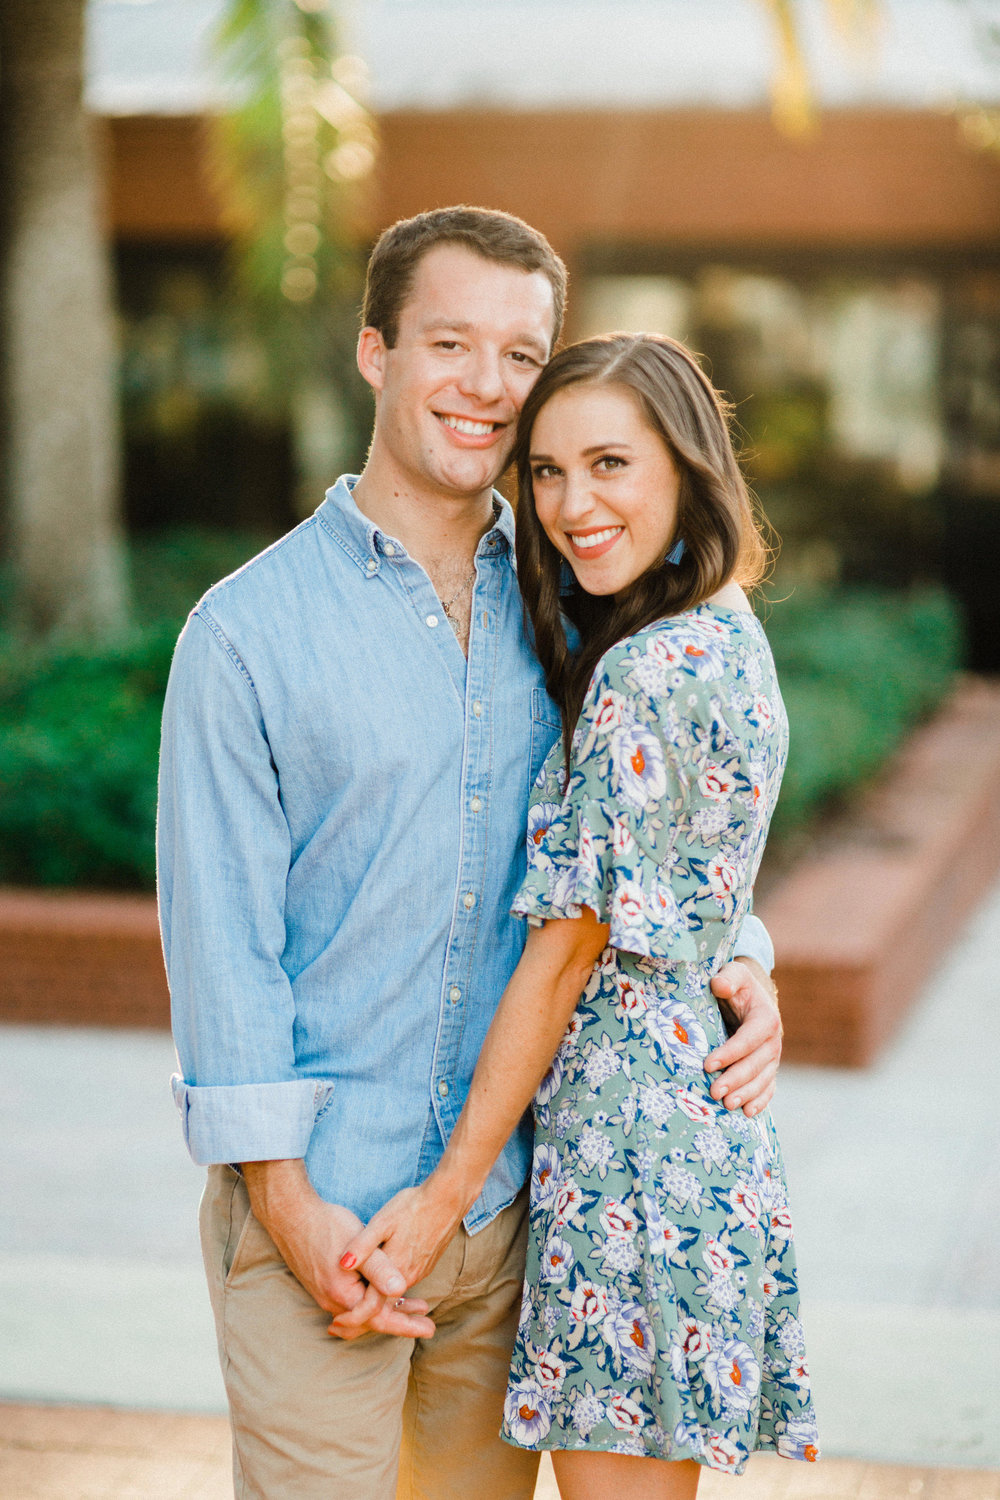 Travis & Christina - Engagement - Jake & Katie Photography_011.jpg